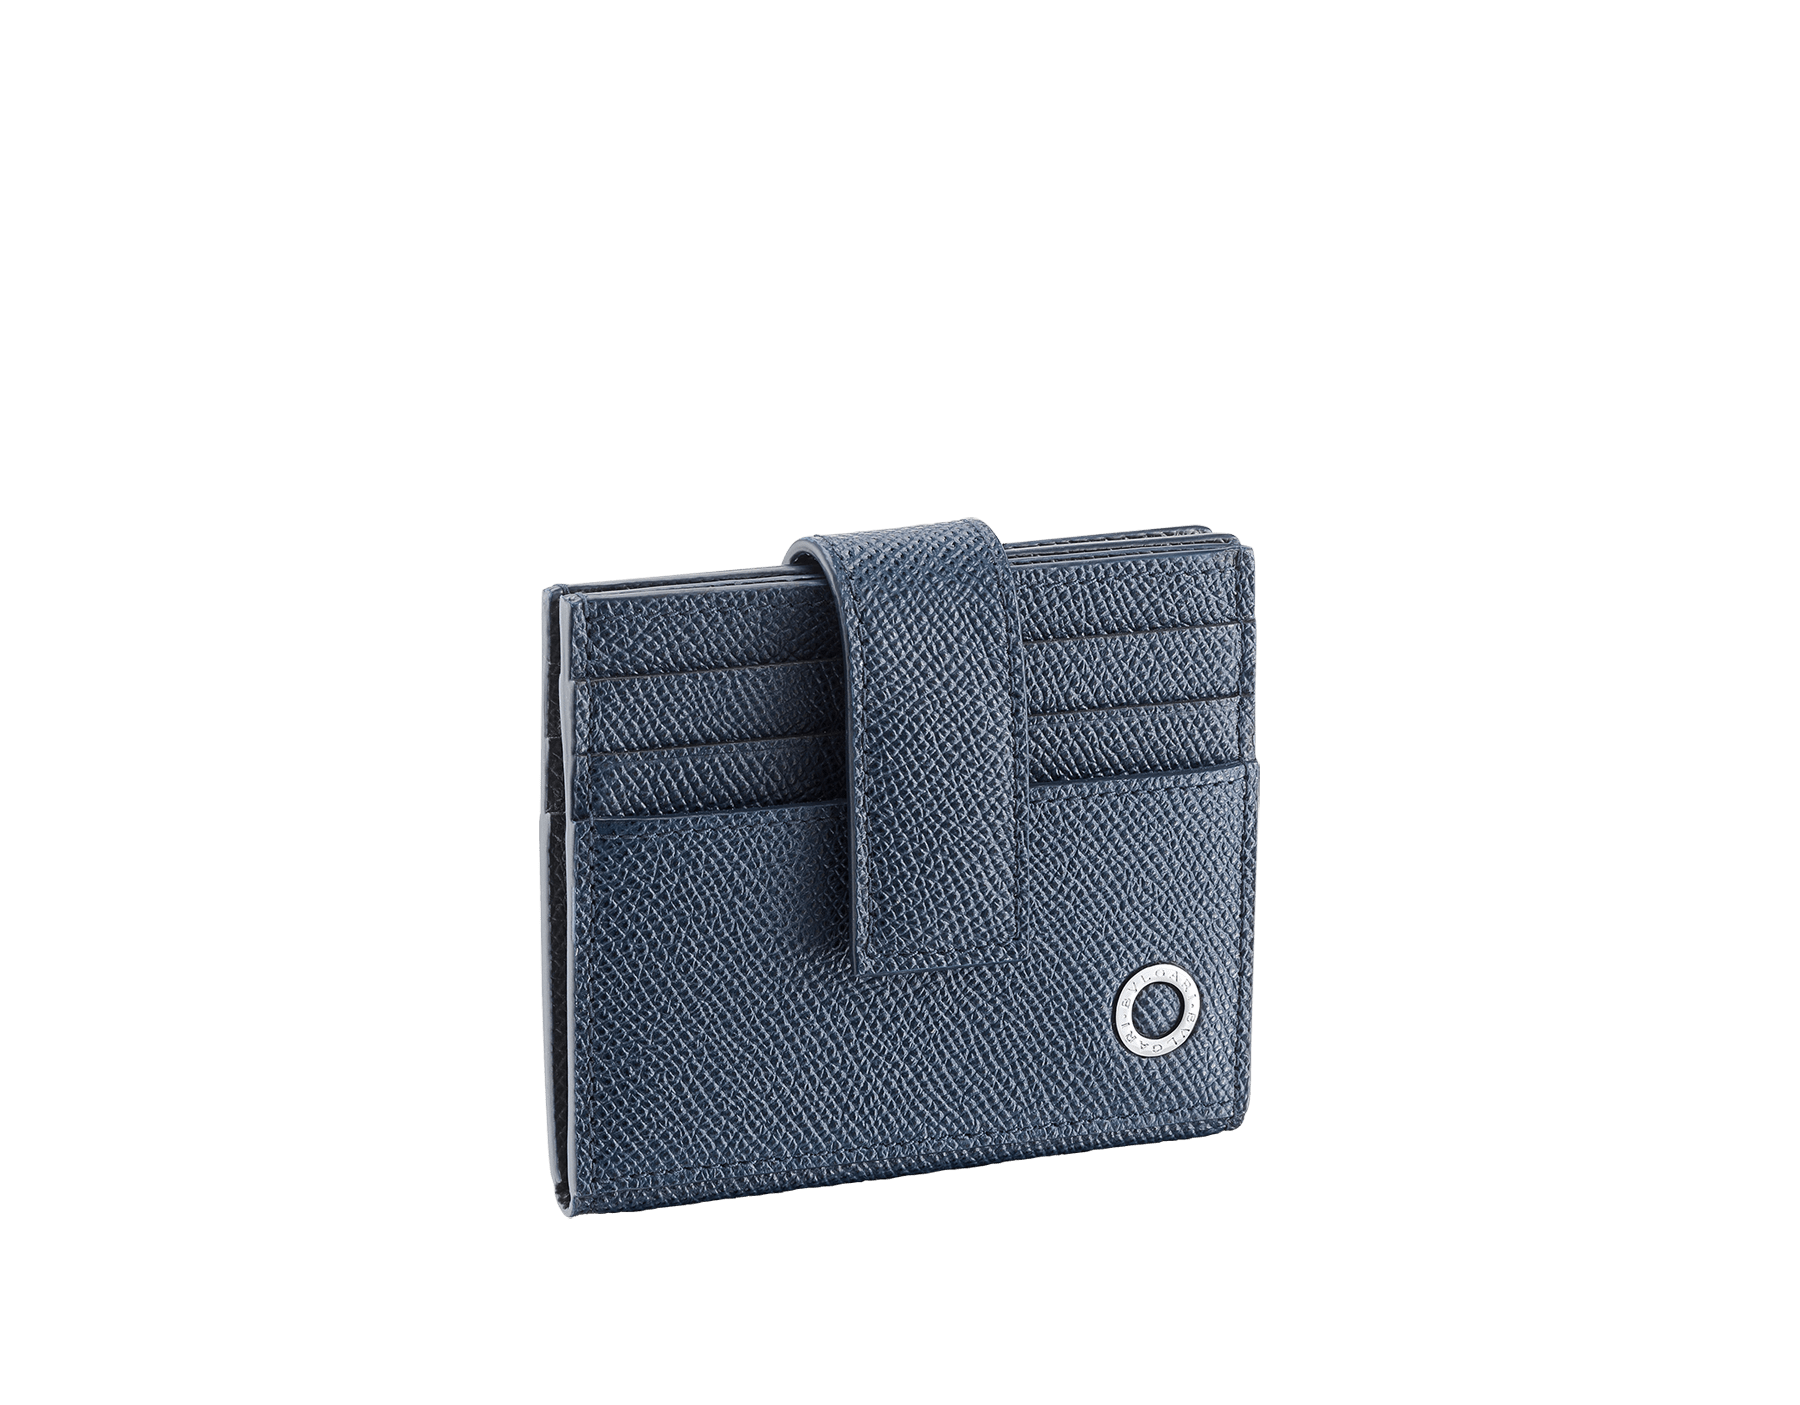 BVLGARI BVLGARI folded credit card holder in denim sapphire and charcoal diamond grain calf leather. Iconic logo décor in palladium plated brass. 289235 image 1